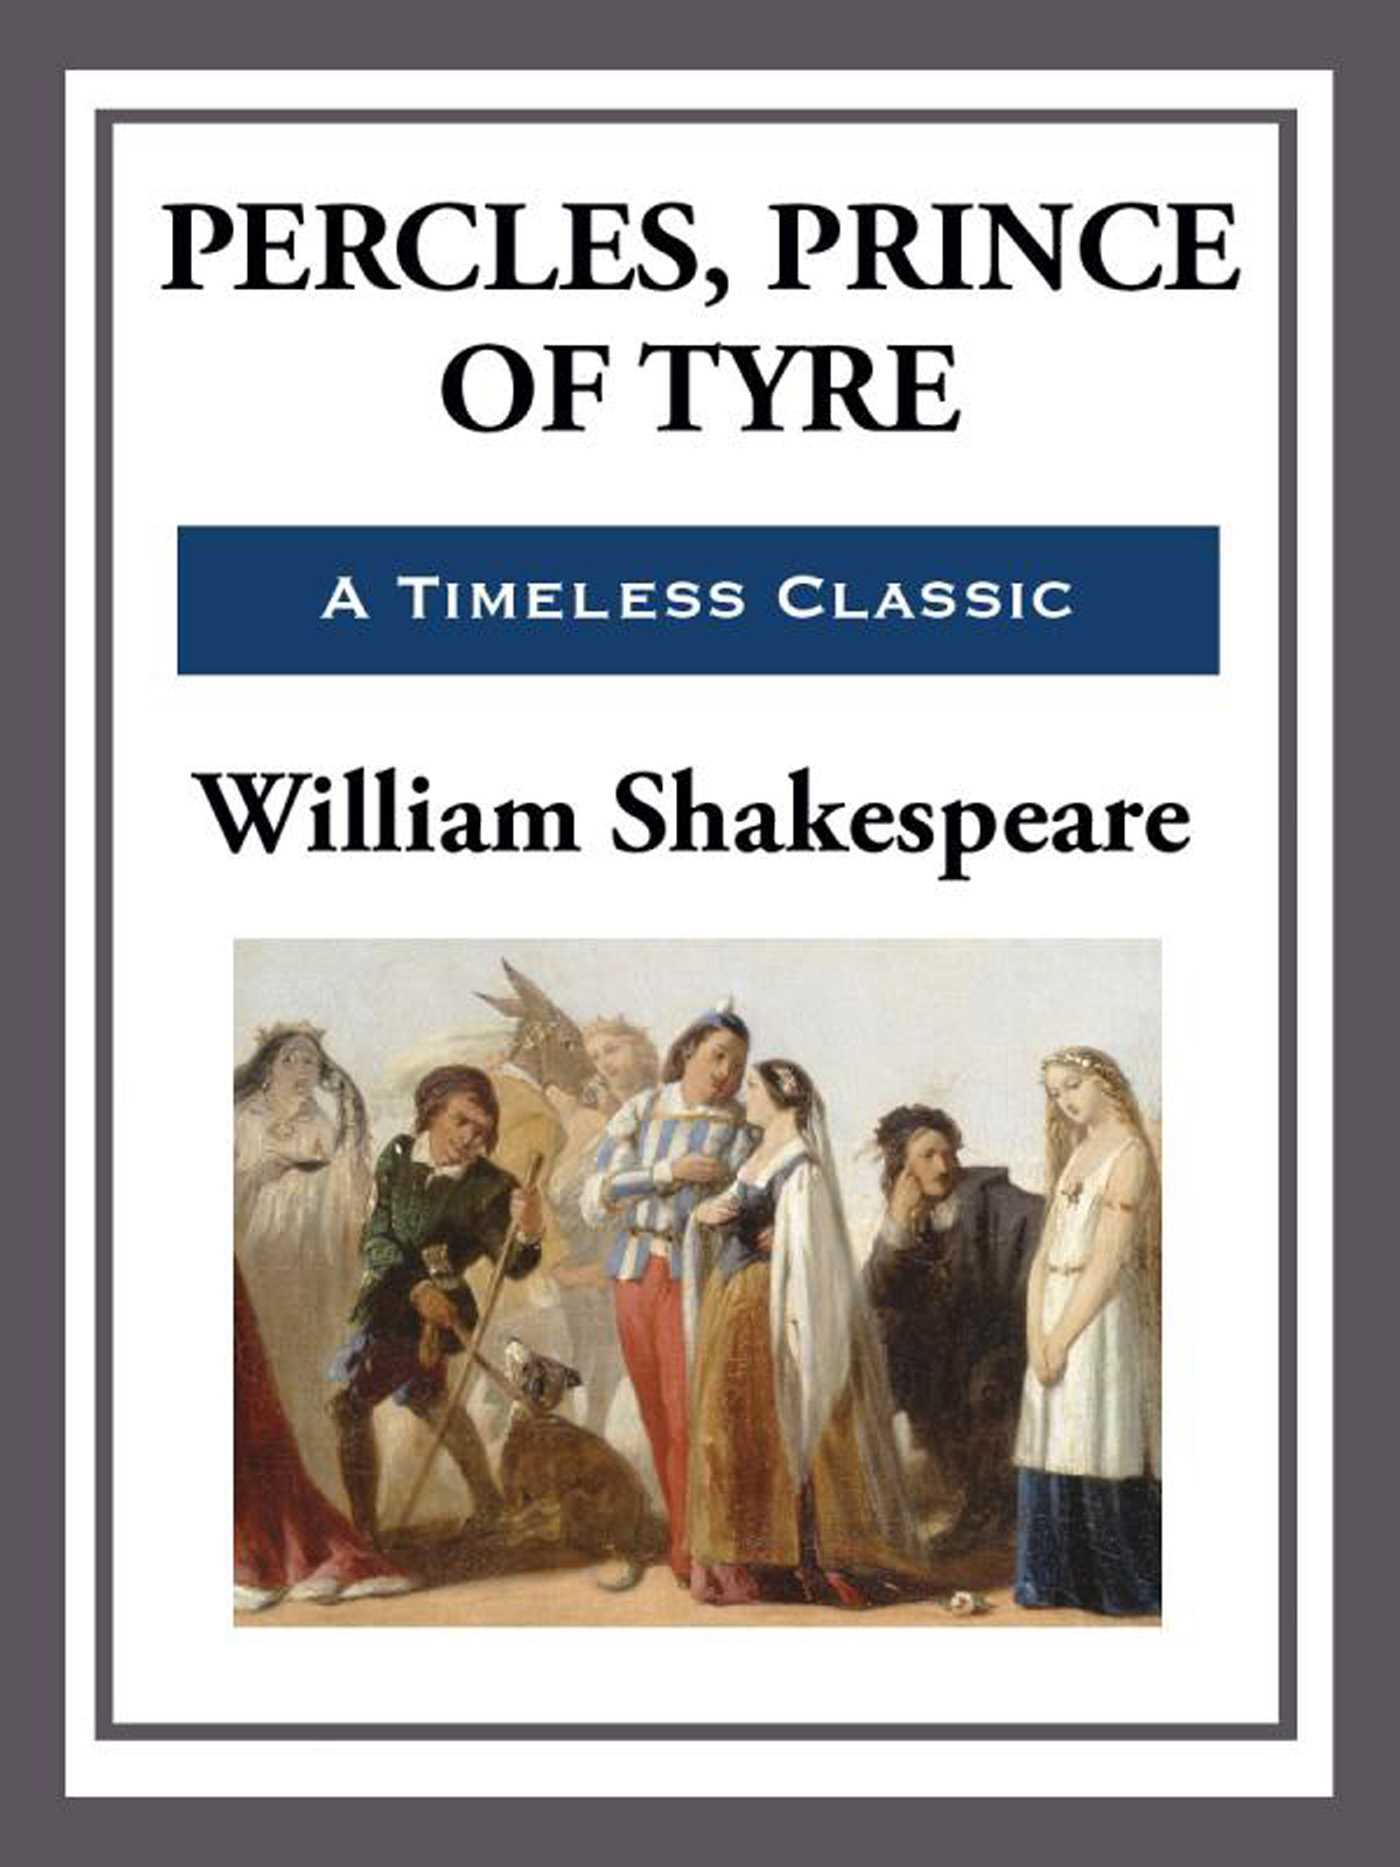 Pericles prince of tyre 9781625589835 hr